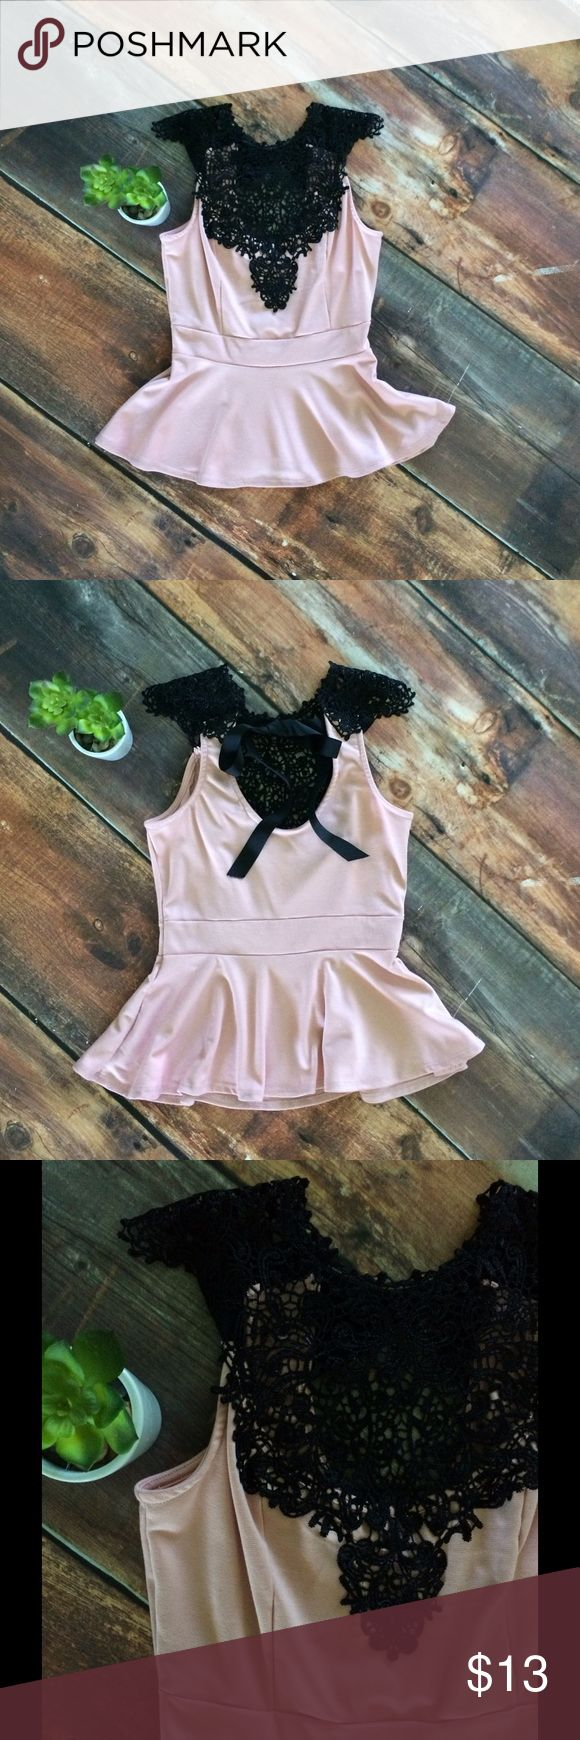 Lace embroidered blush and black peplum top Beautiful sleeveless light pink blush and black lace peplum top with gorgeous detail bow back. julie's closet Tops